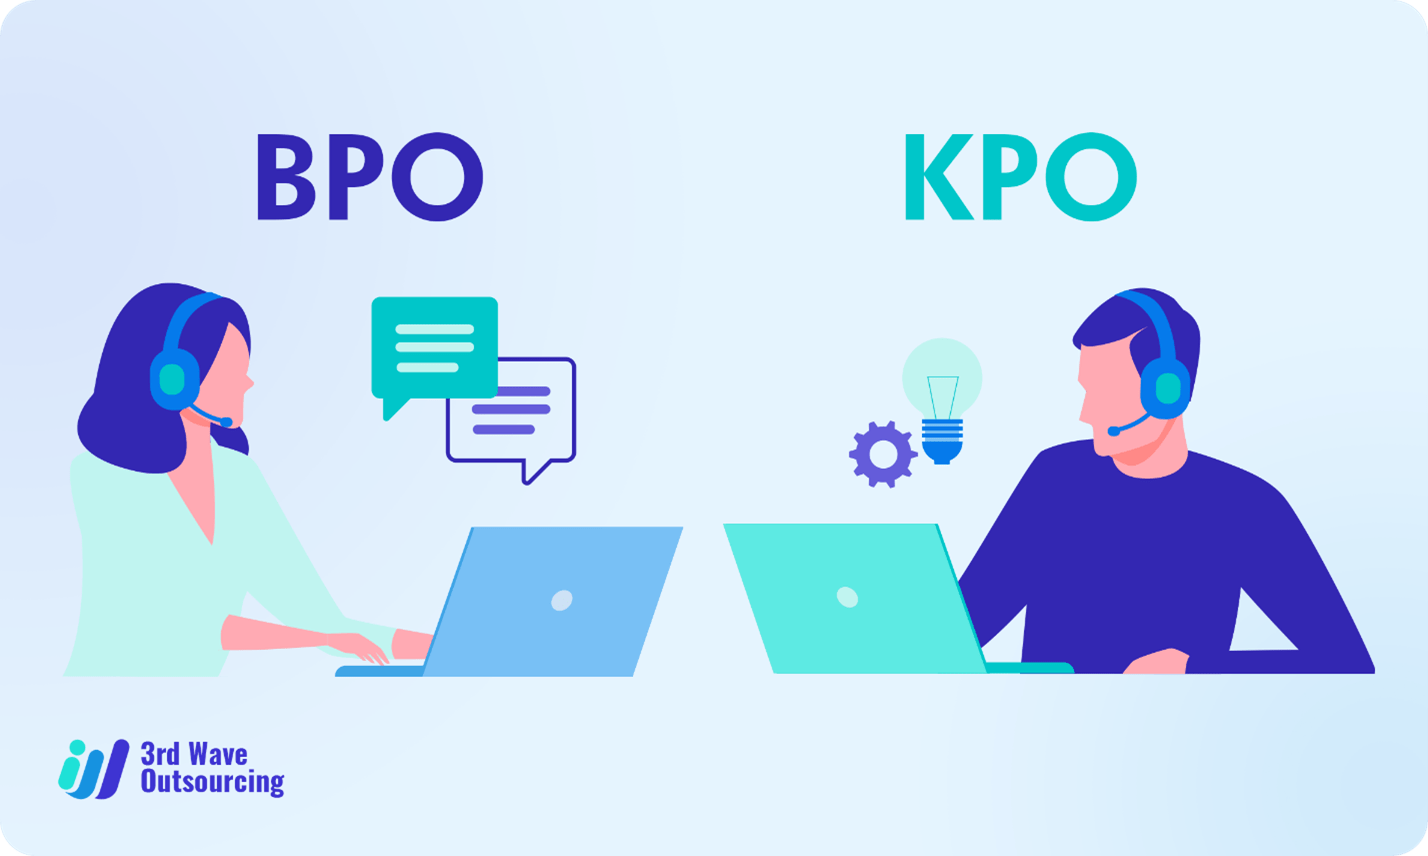 BPO vs. KPO: The Difference and Why It Matters